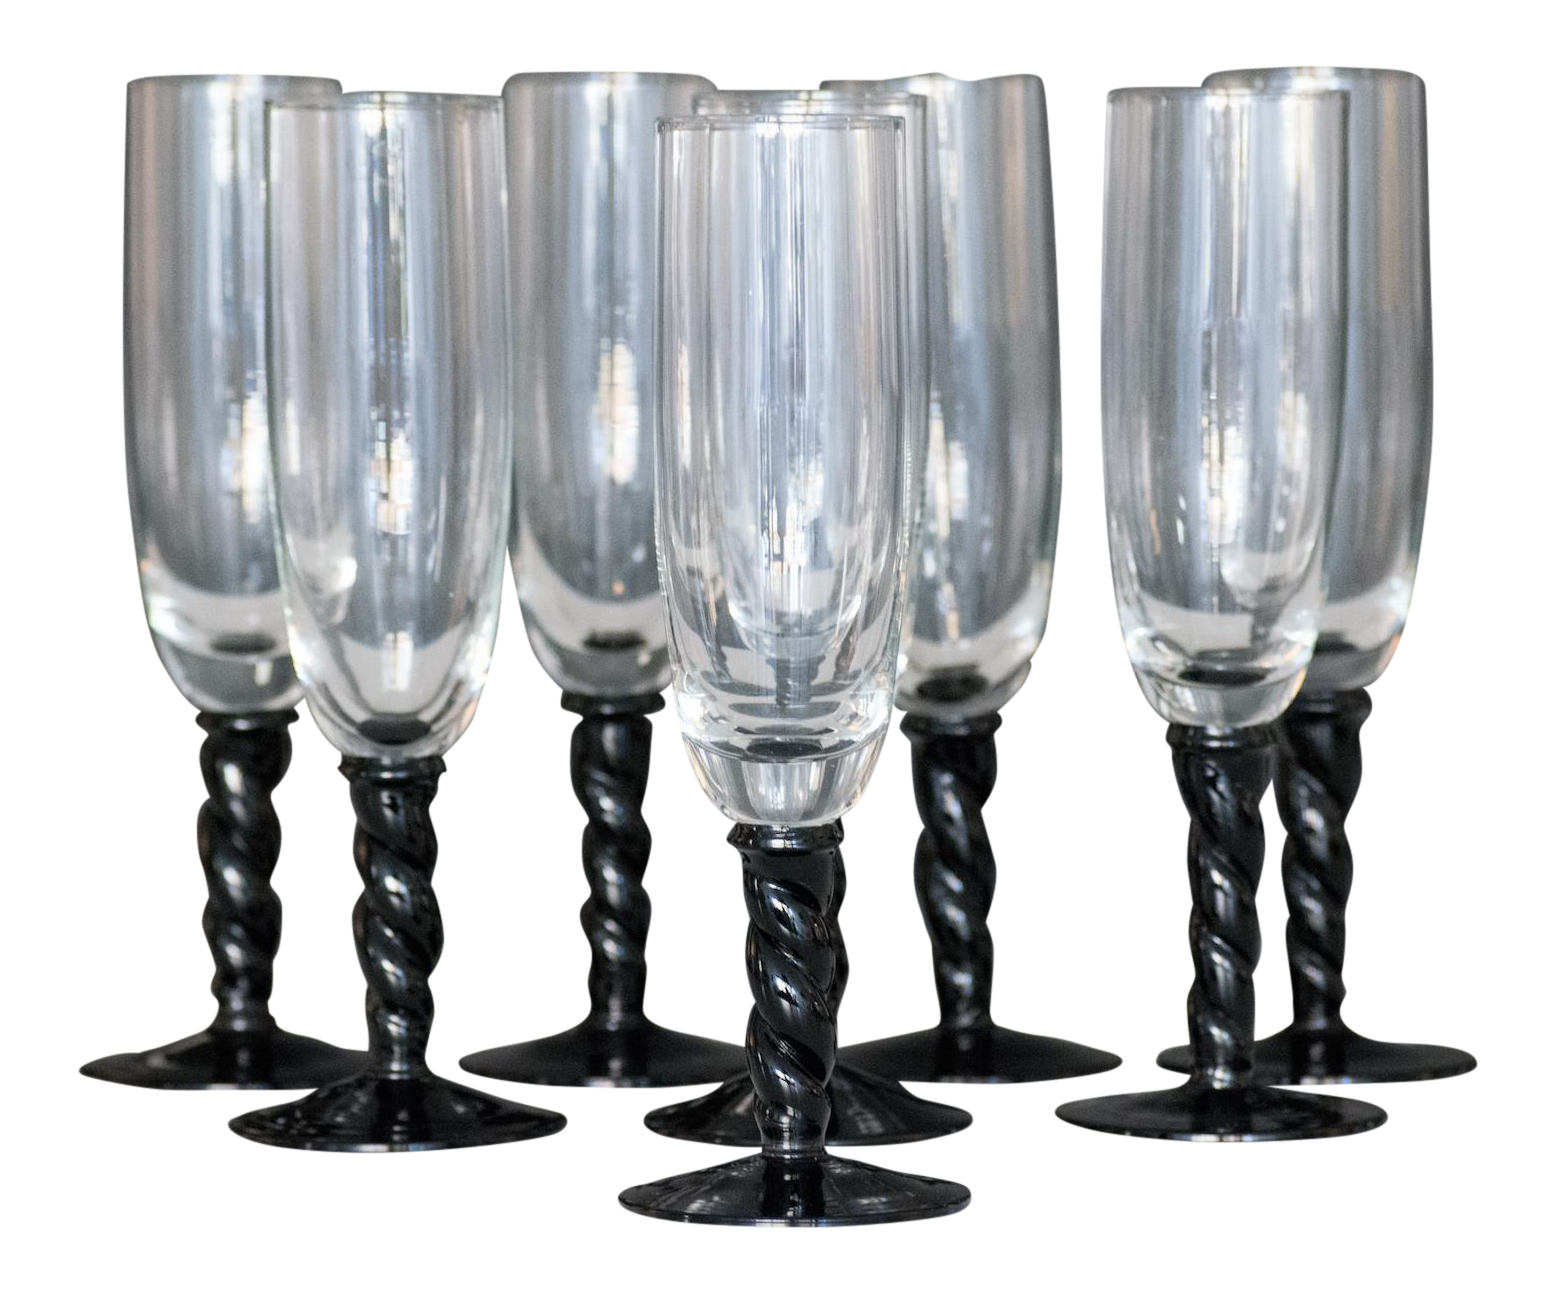 midcentury modern champagne flutes  set of   chairish - image of midcentury modern champagne flutes  set of